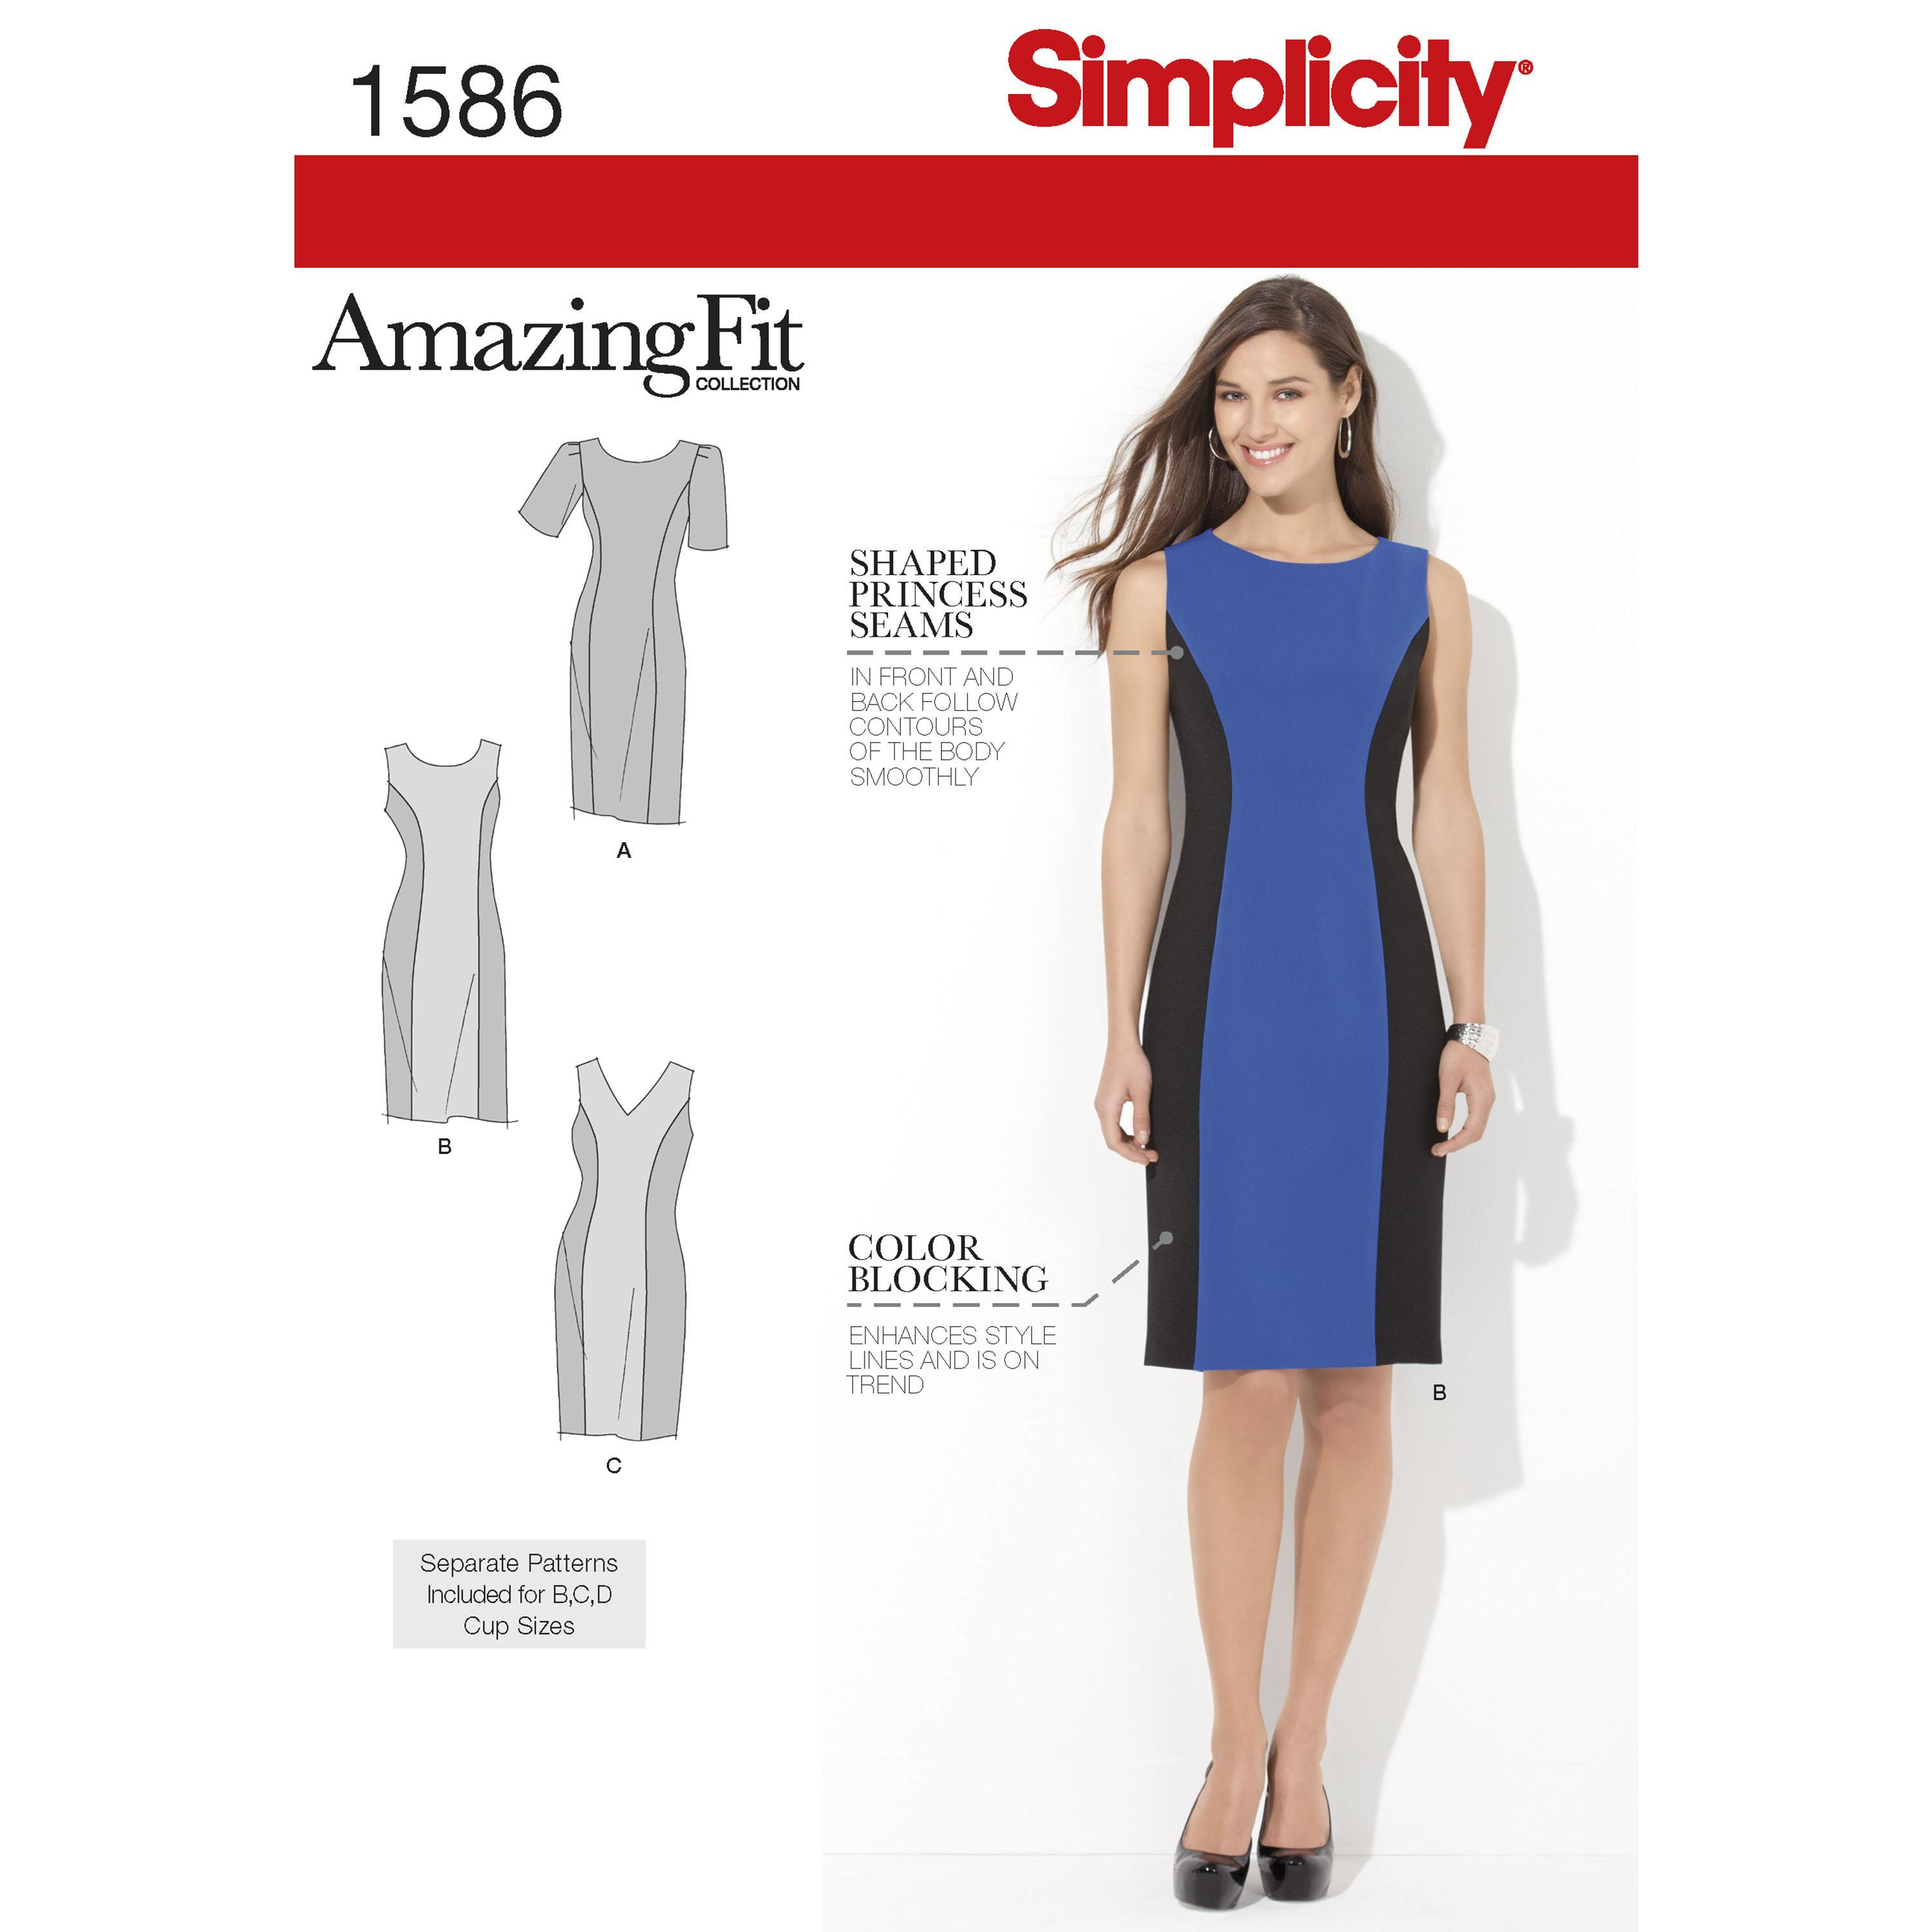 Simplicity S1586 Women's and Plus Size Amazing Fit Dress